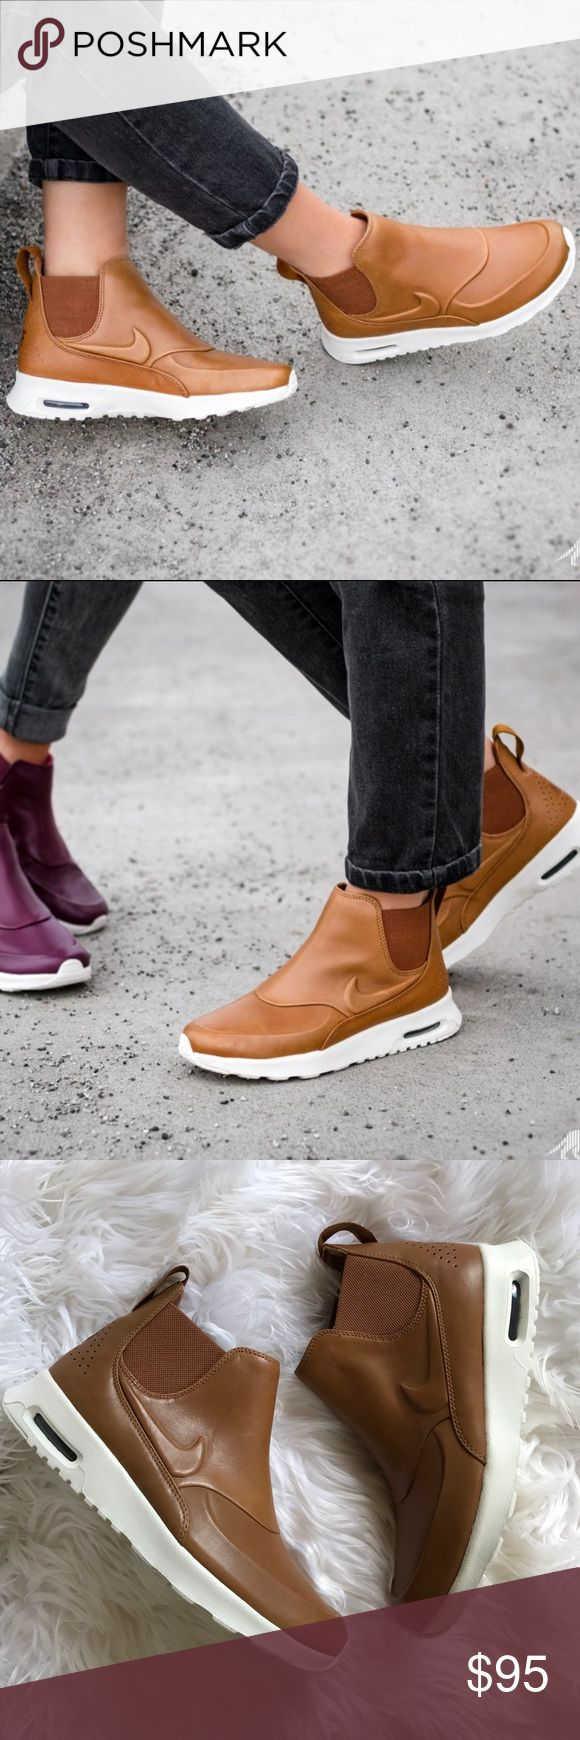 Buty Nike Wmns Air Max Thea Mid